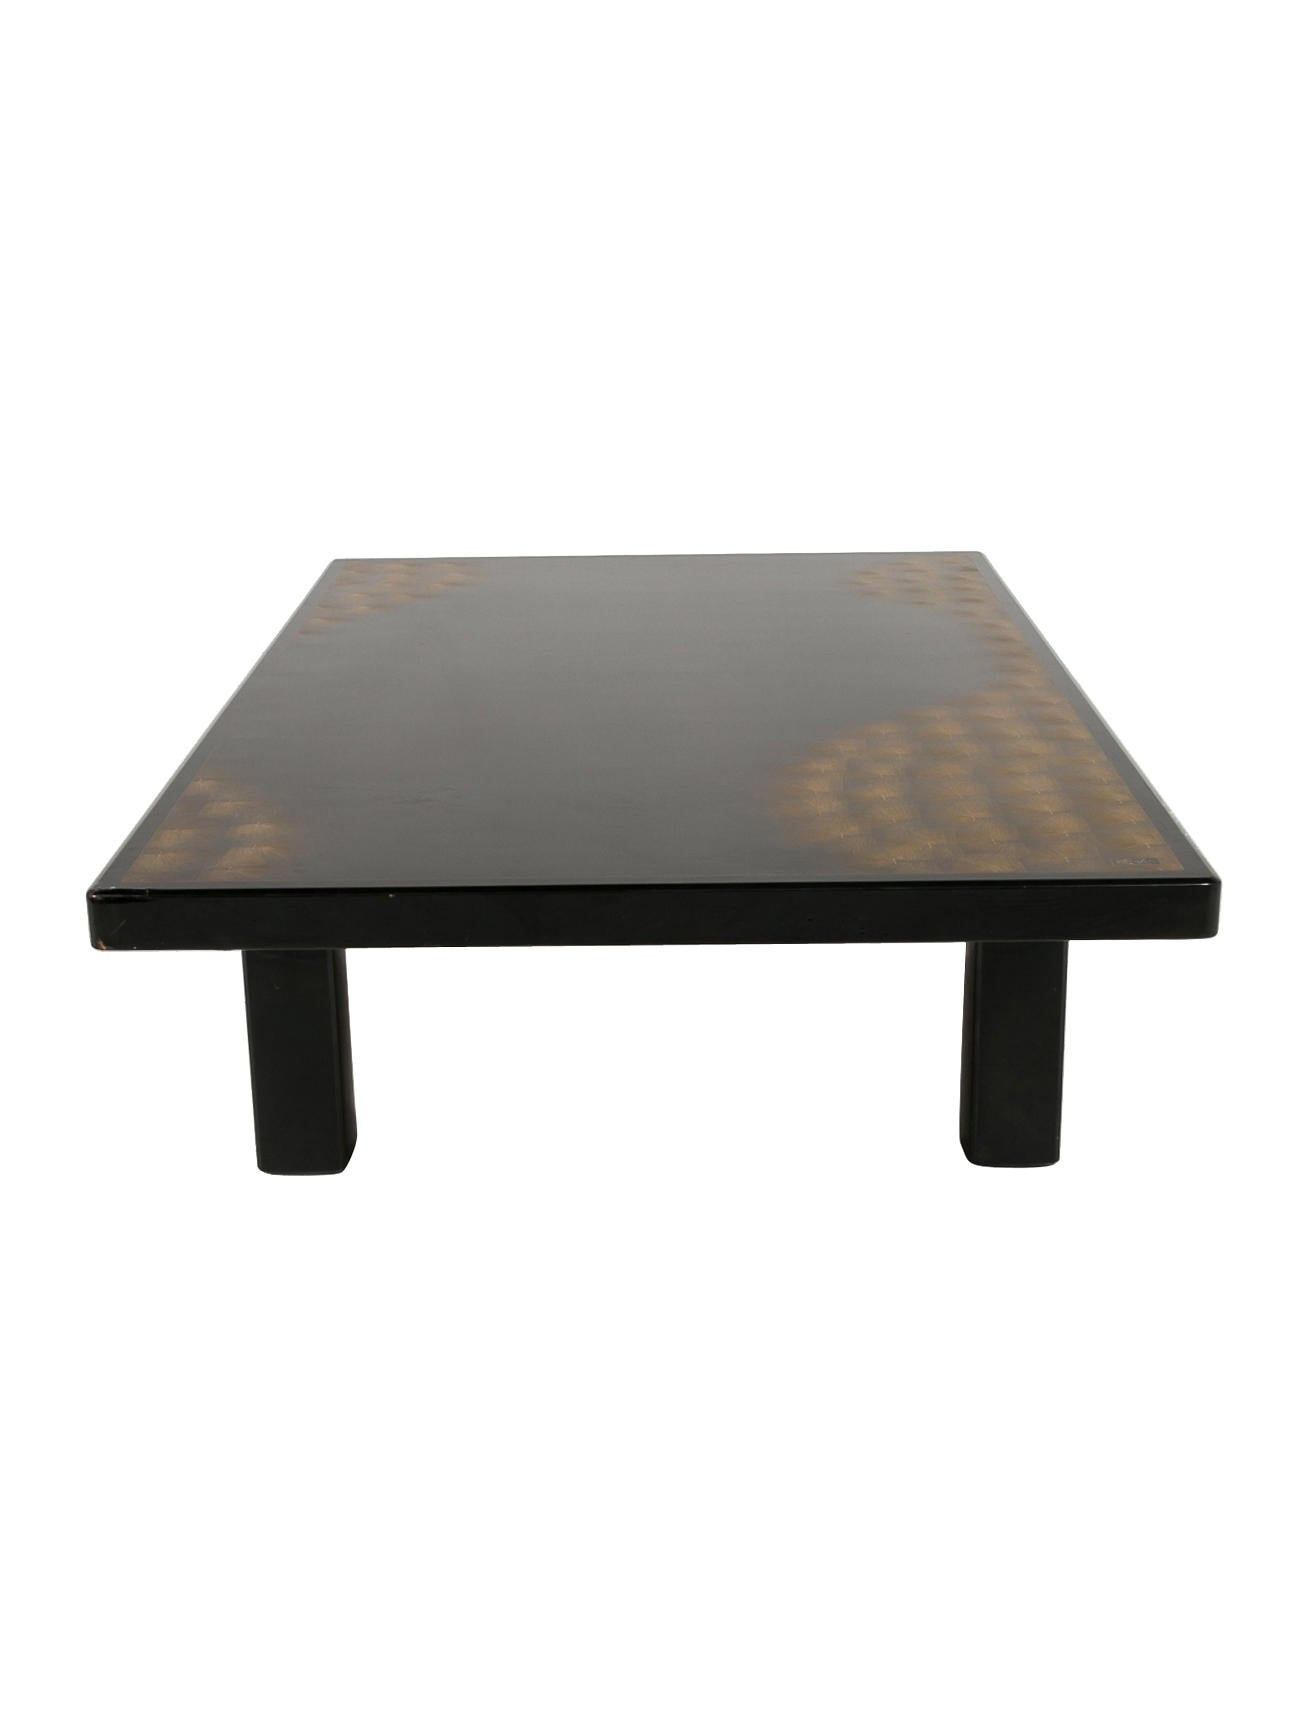 Japanese Lacquer Coffee Table Furniture TABLE